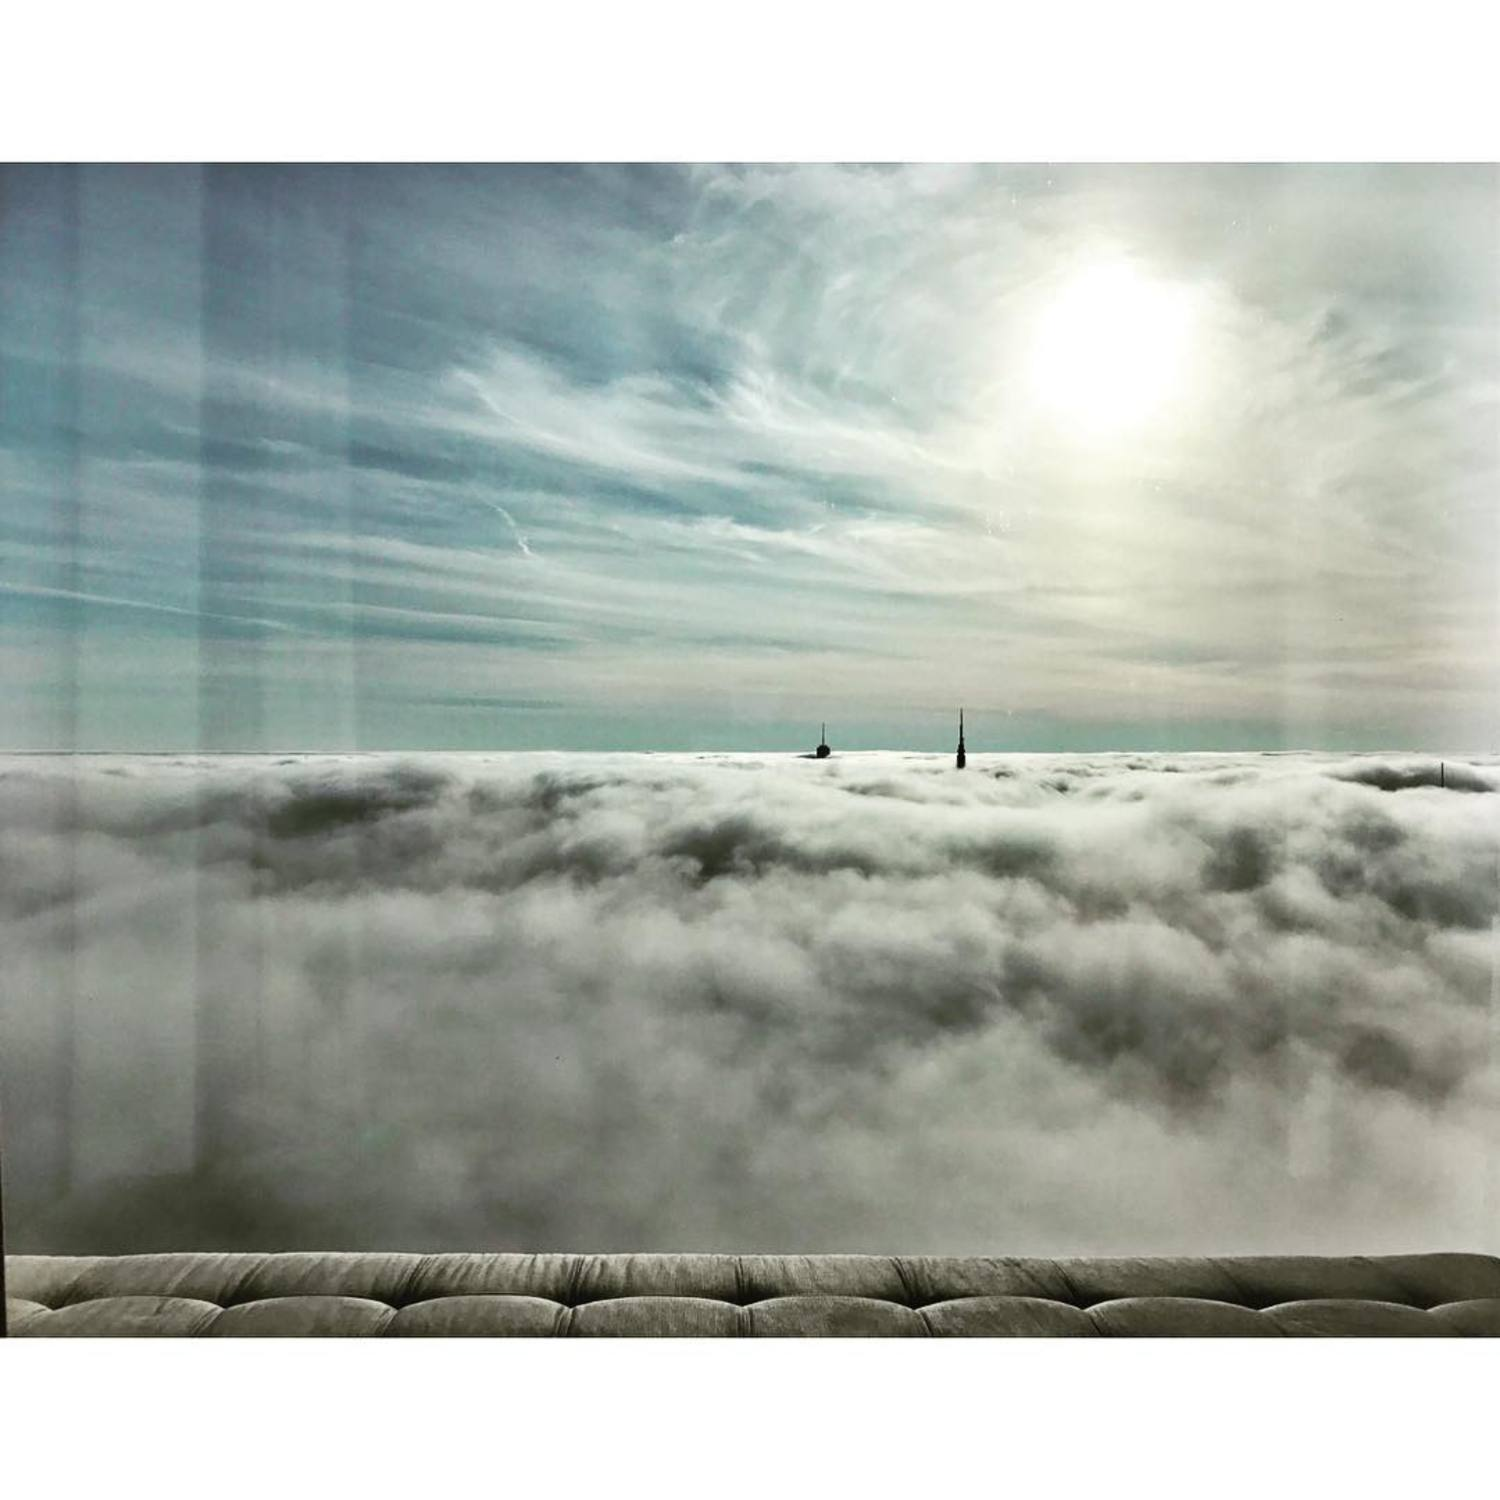 where am I? just looks like heaven...but it's actually the view from my latest project, with the Empire State Building and World Trade Center peeking thru the clouds....check out the full story up on archdigest.com link in bio  #rafaelvinoly #empirestatebuilding #worldtradecenter #feelslikeheaven